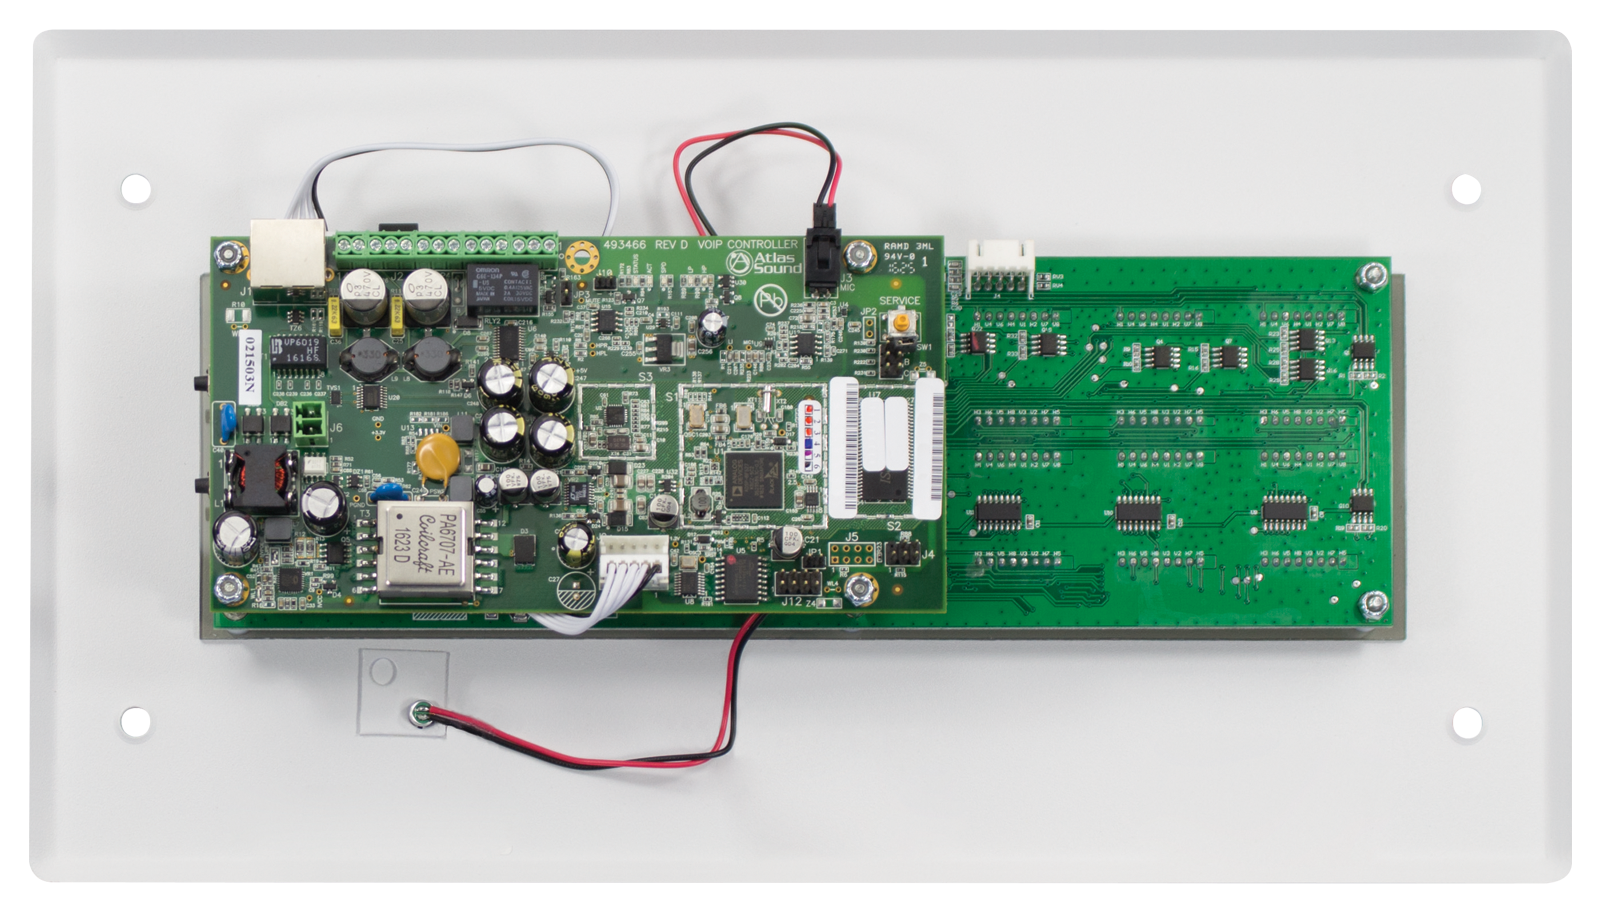 Poe Flush Mount Led Display Featuring 16 X 64 High Resolution Board Circuit Supporting Scrolling Text Atlasied